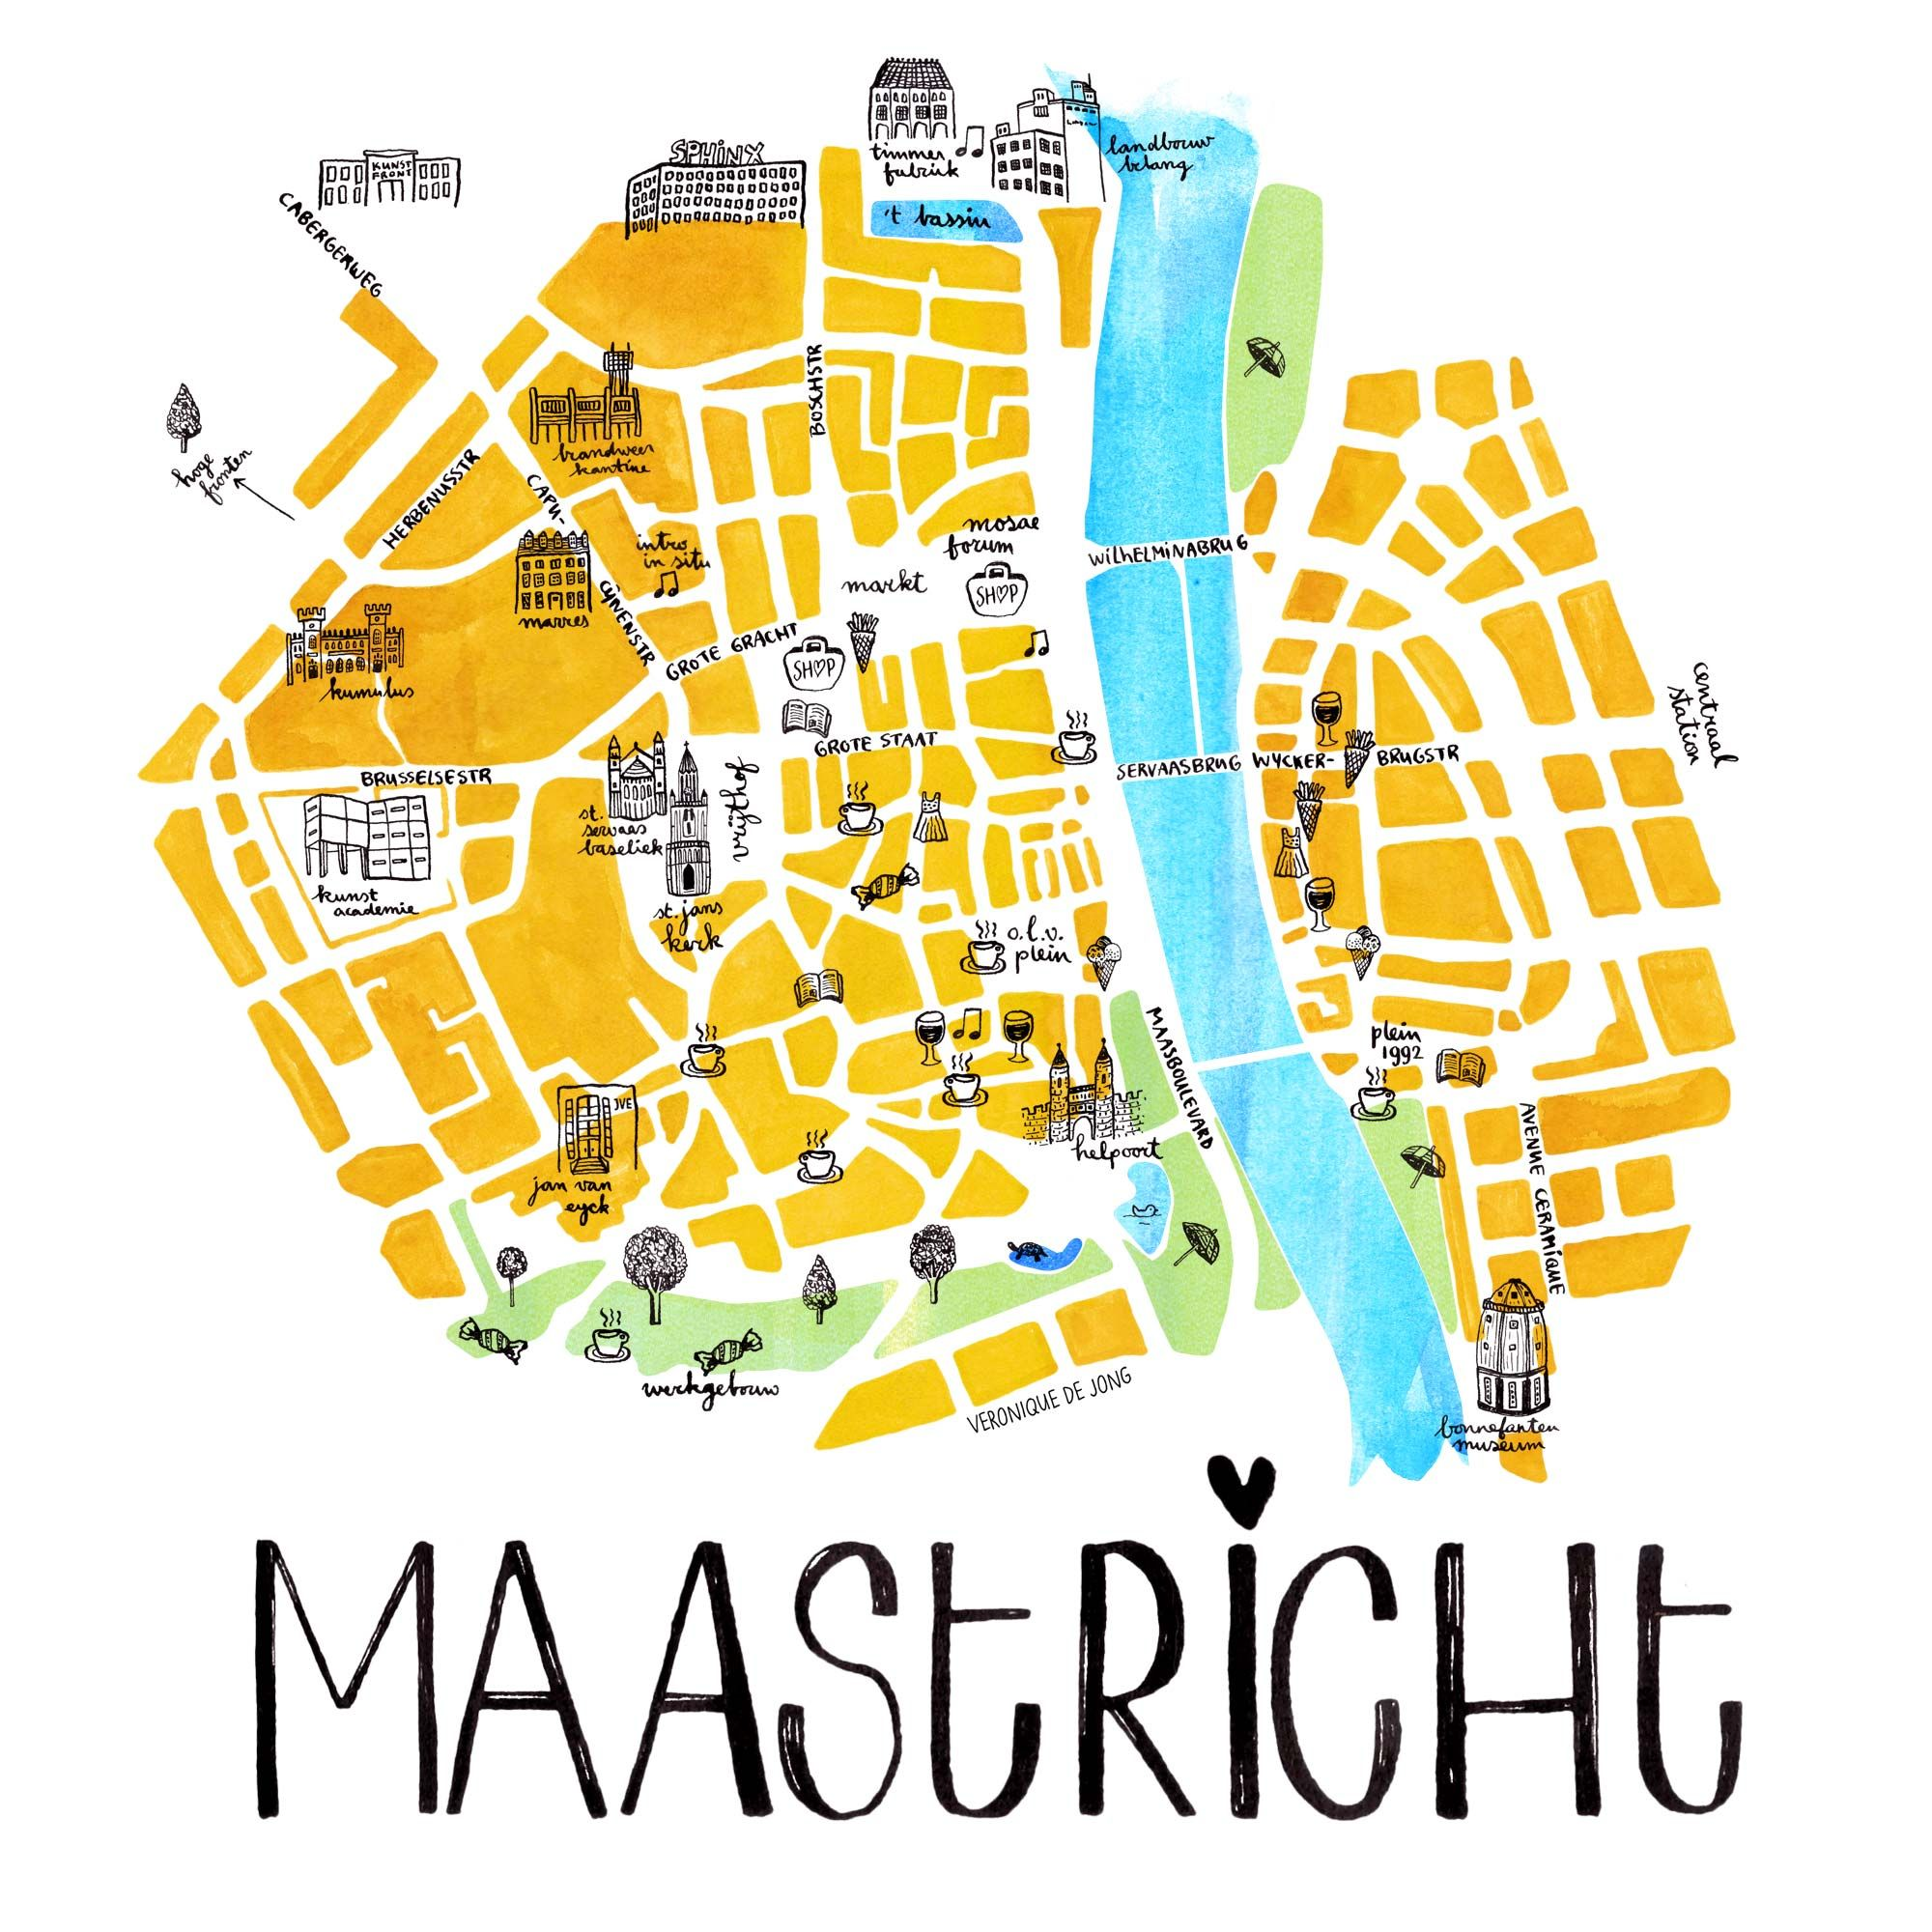 Map Of Maastricht Maastricht Map Netherlands